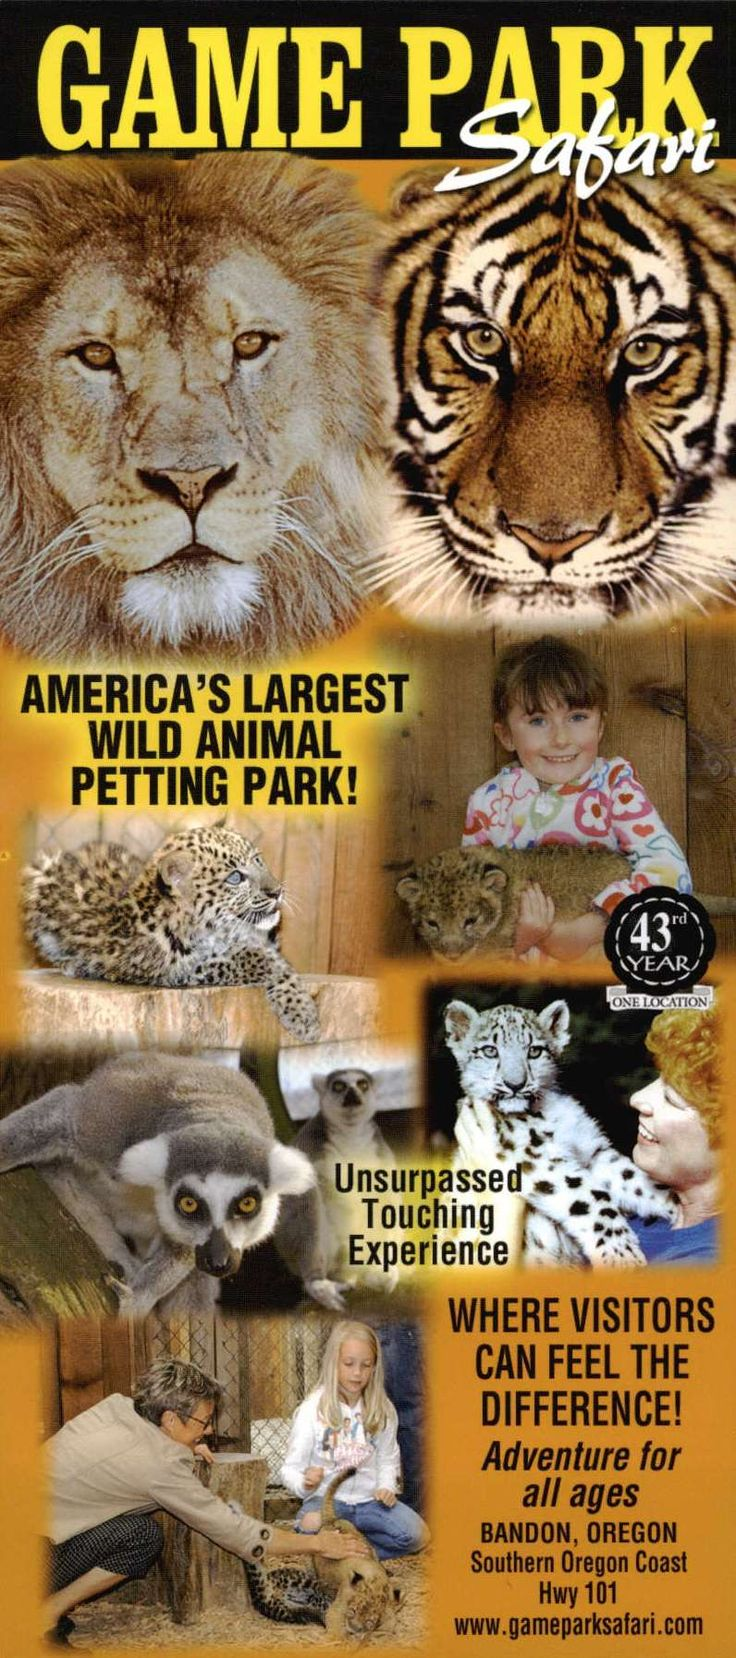 West Coast Game Park - Bandon, OR -  I've been here twice angel got to hold tiger cubs.....I will definitely be going back again!